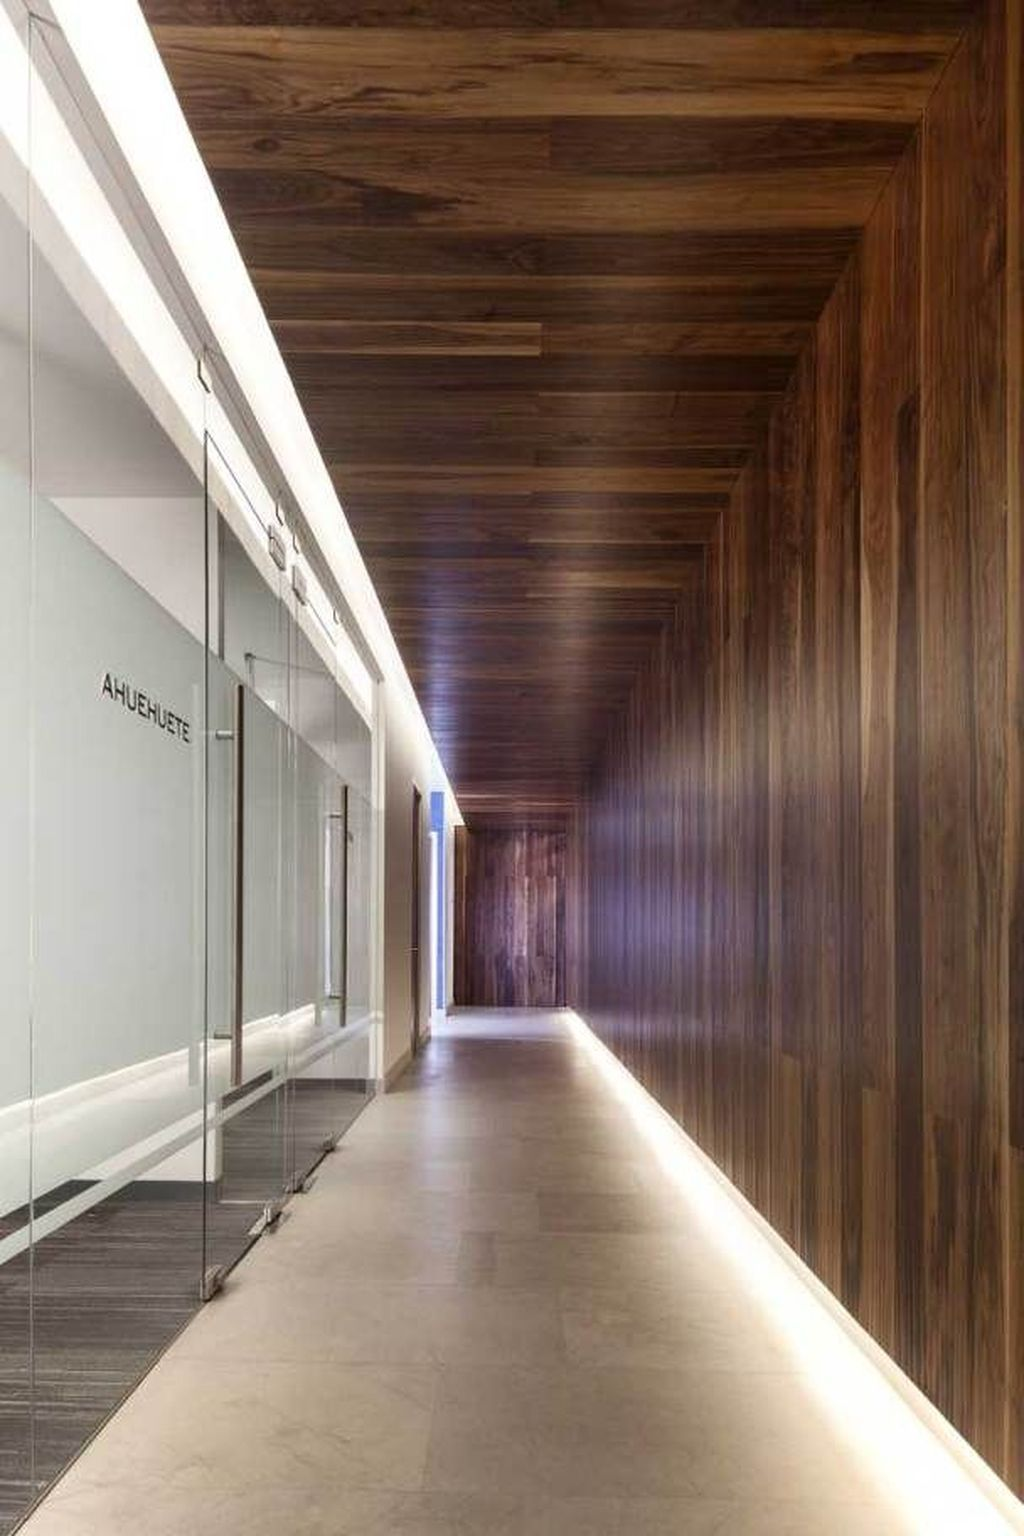 40 Contrast Interior Design Interior Designs Are Extremely Critical In Shaping The Appearance Of A Hom Contrast Interior Design Corridor Design Lobby Design